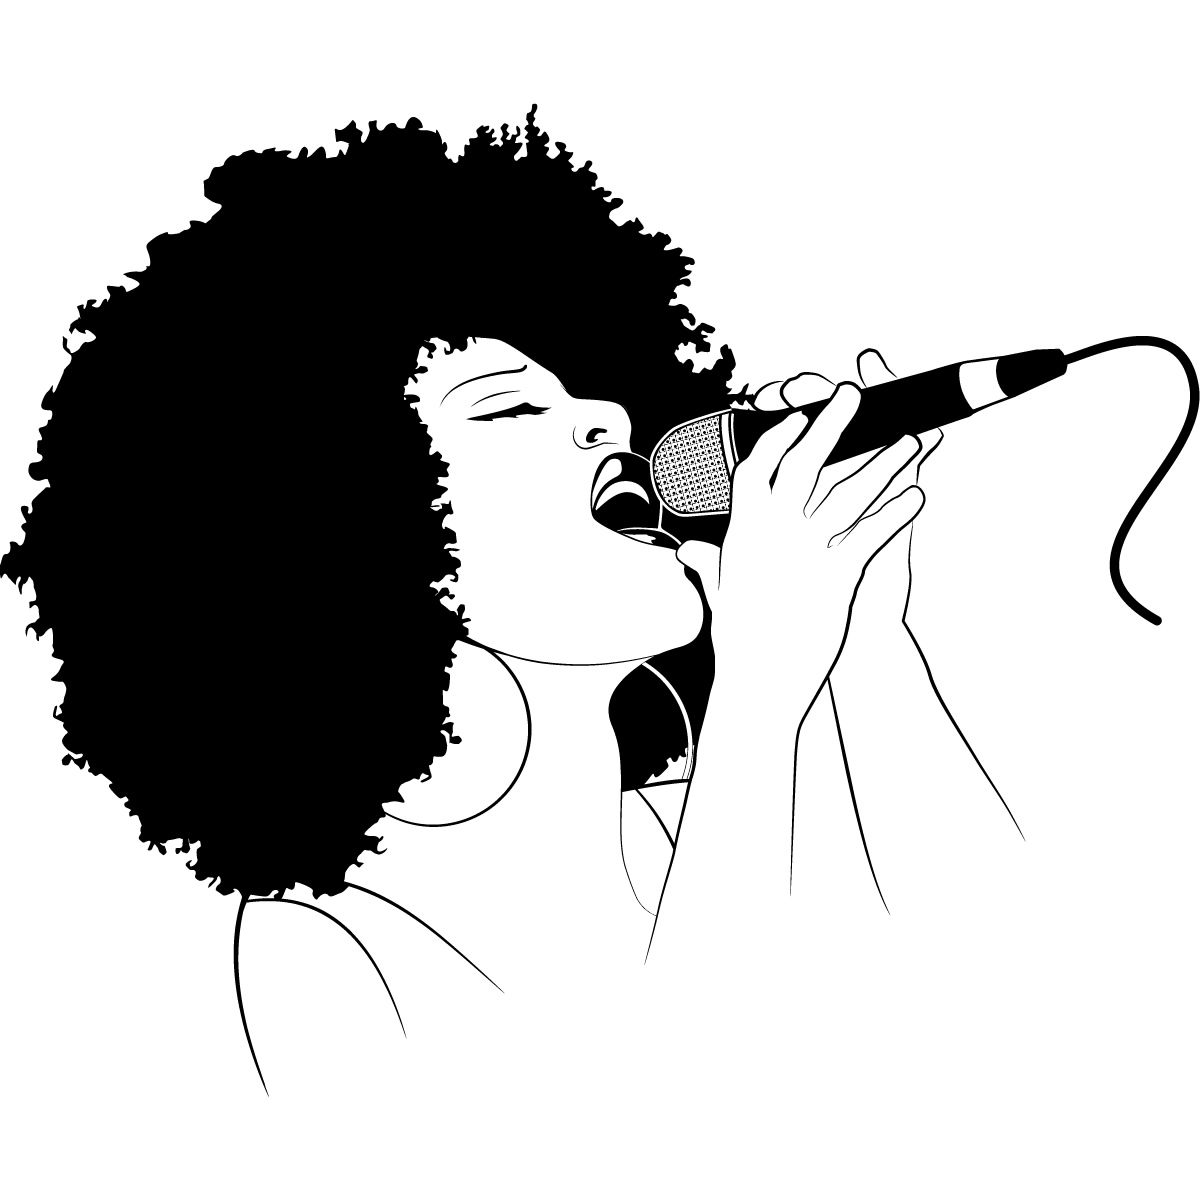 Details about Female Singer Wall Art Decals Wall Stickers Transfers